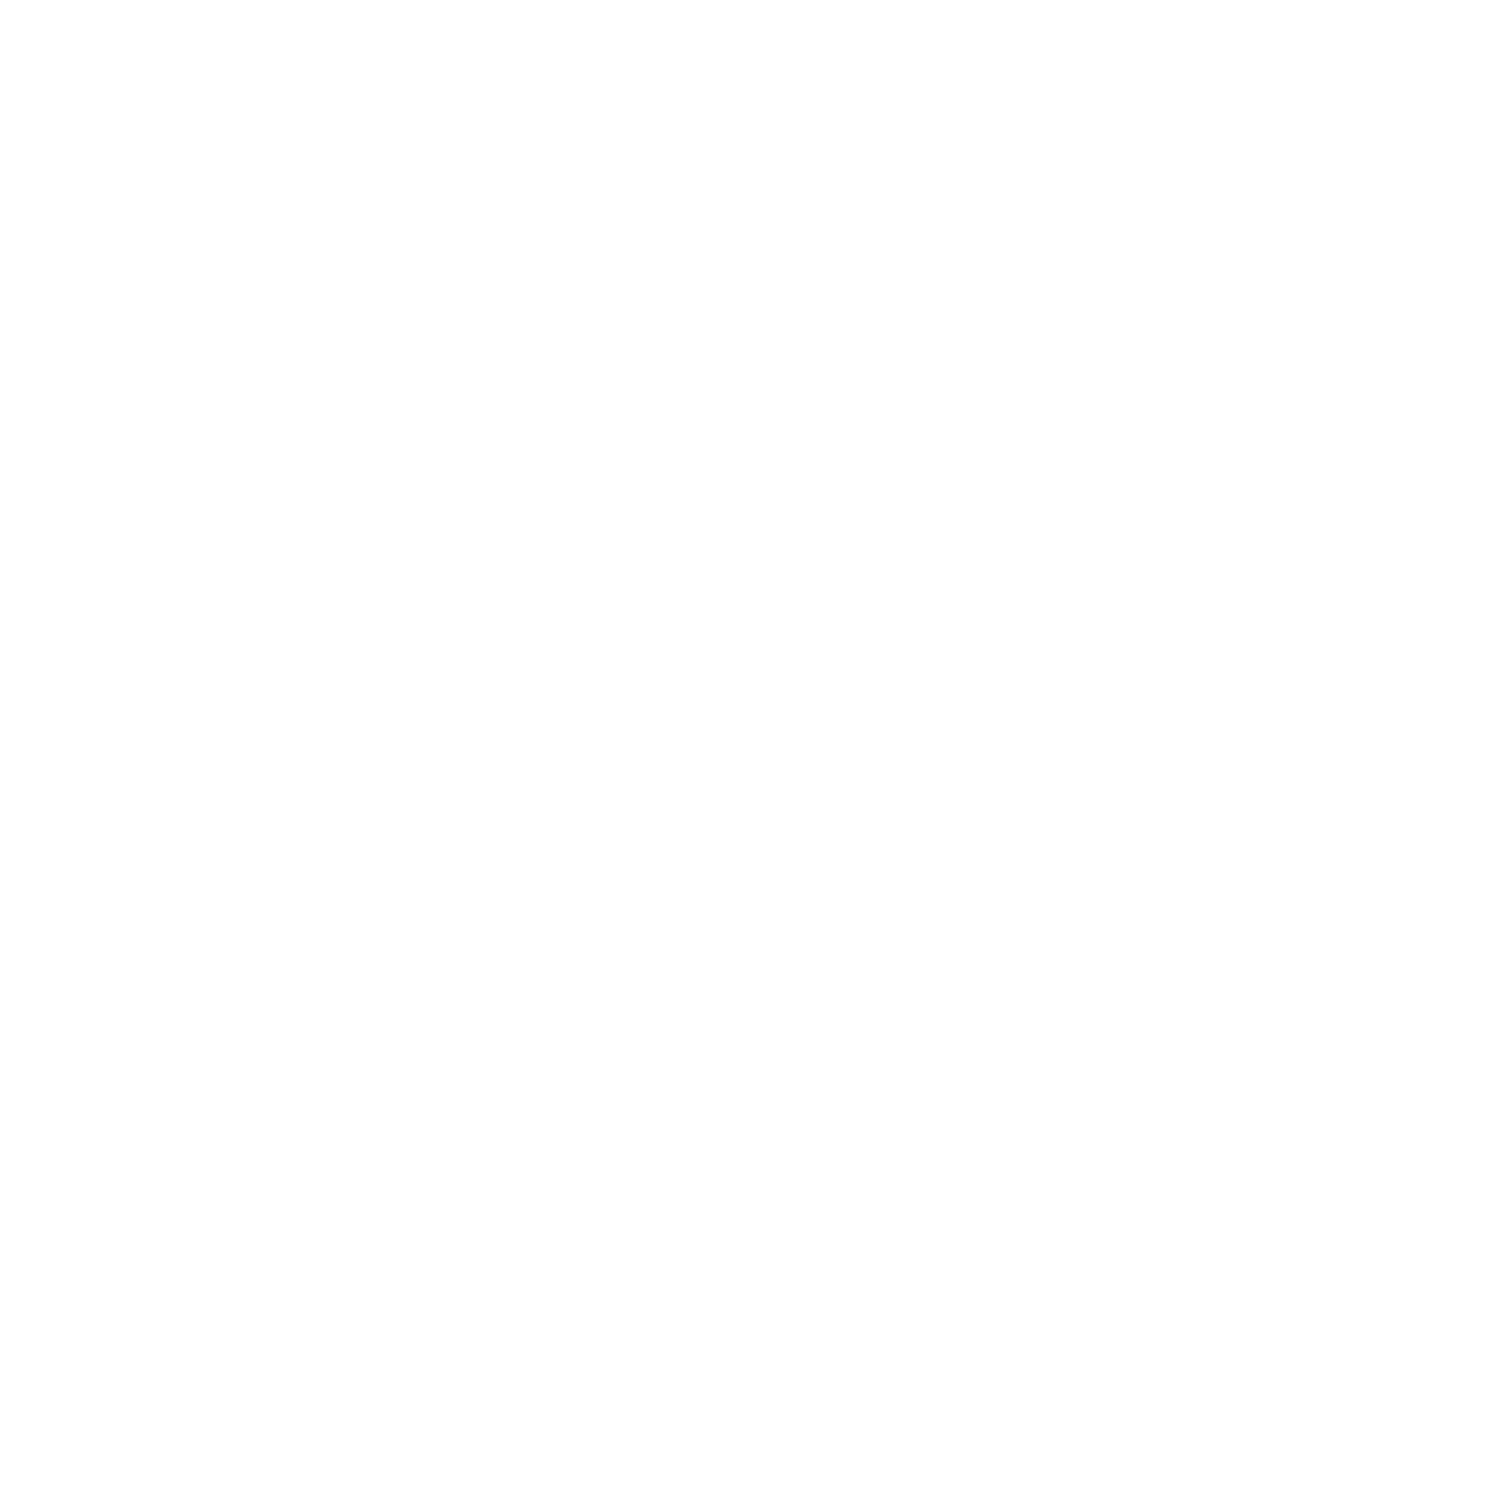 SHINE CYCLE YOGA BARRE